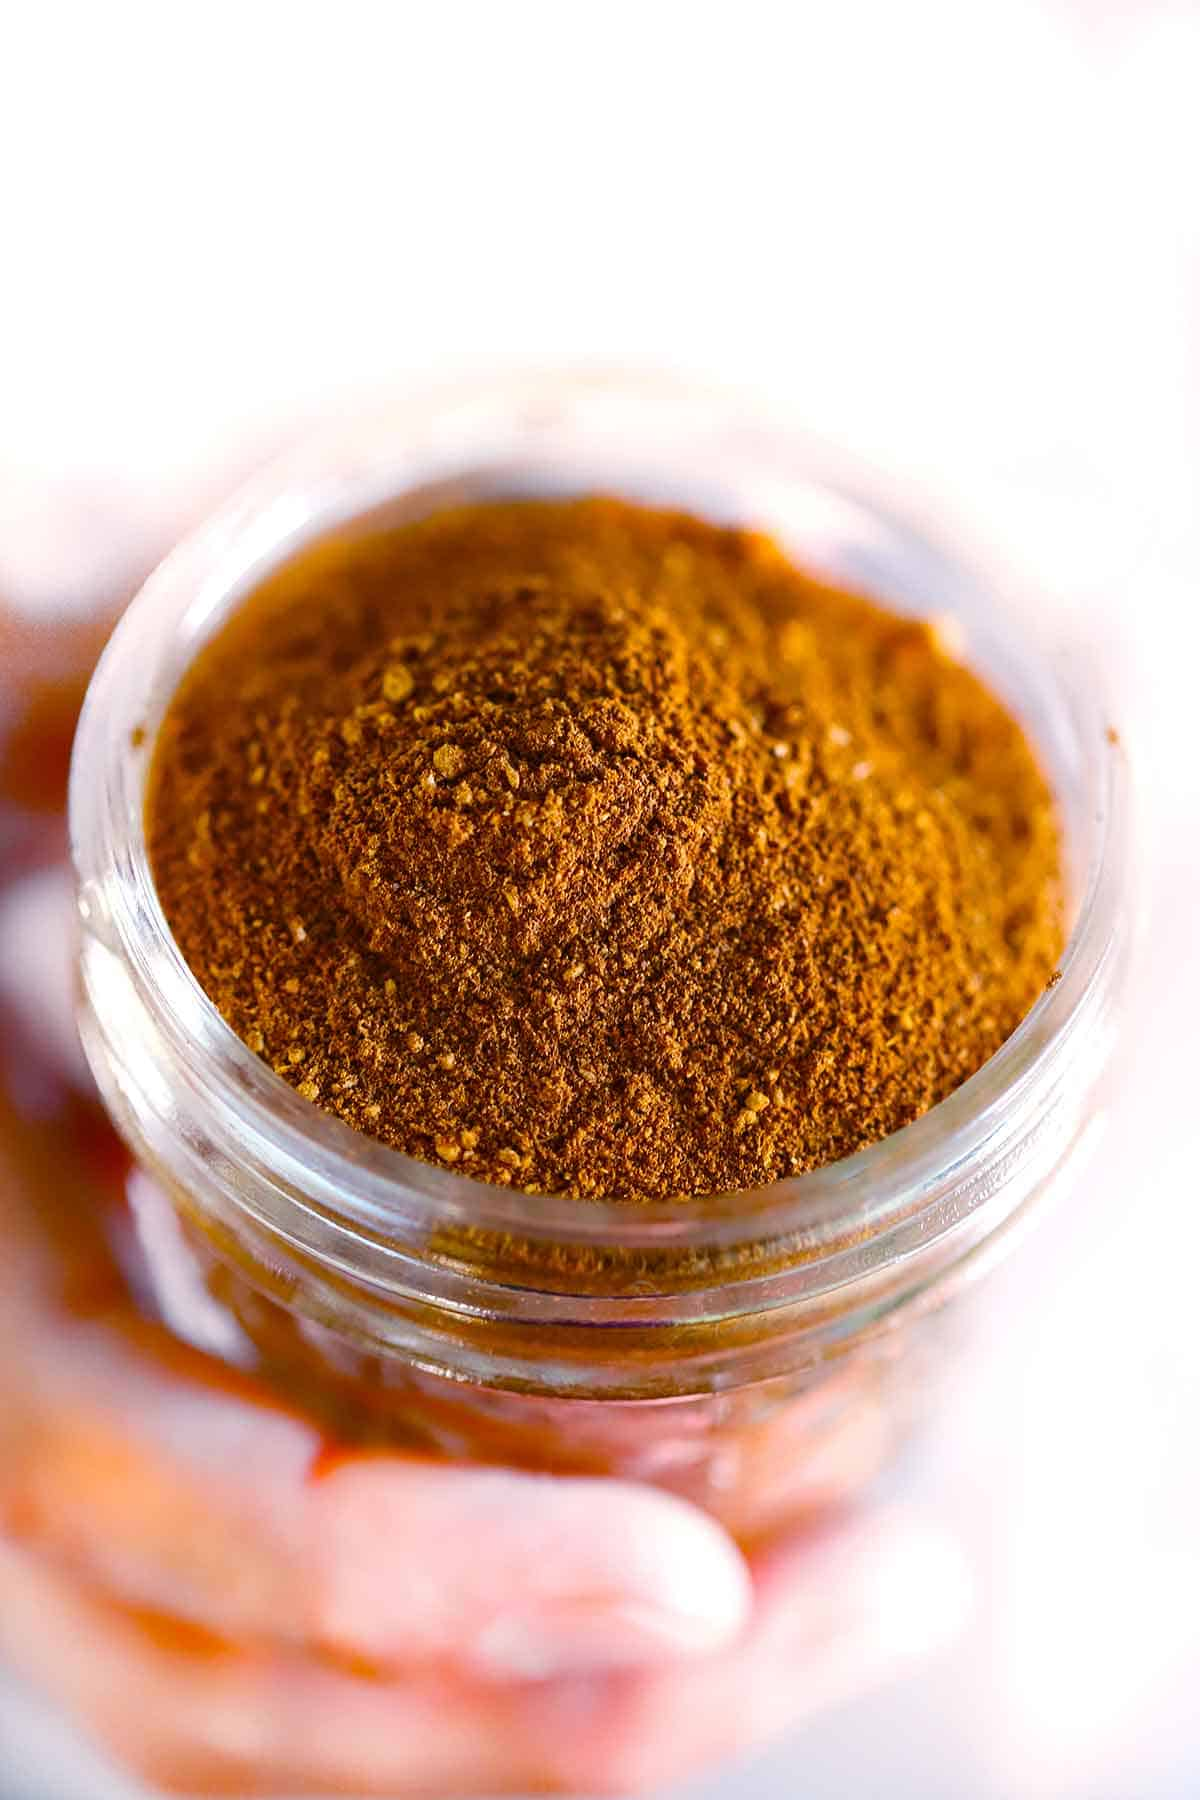 A hand holding a small mason jar of homemade pumpkin pie spice mix.